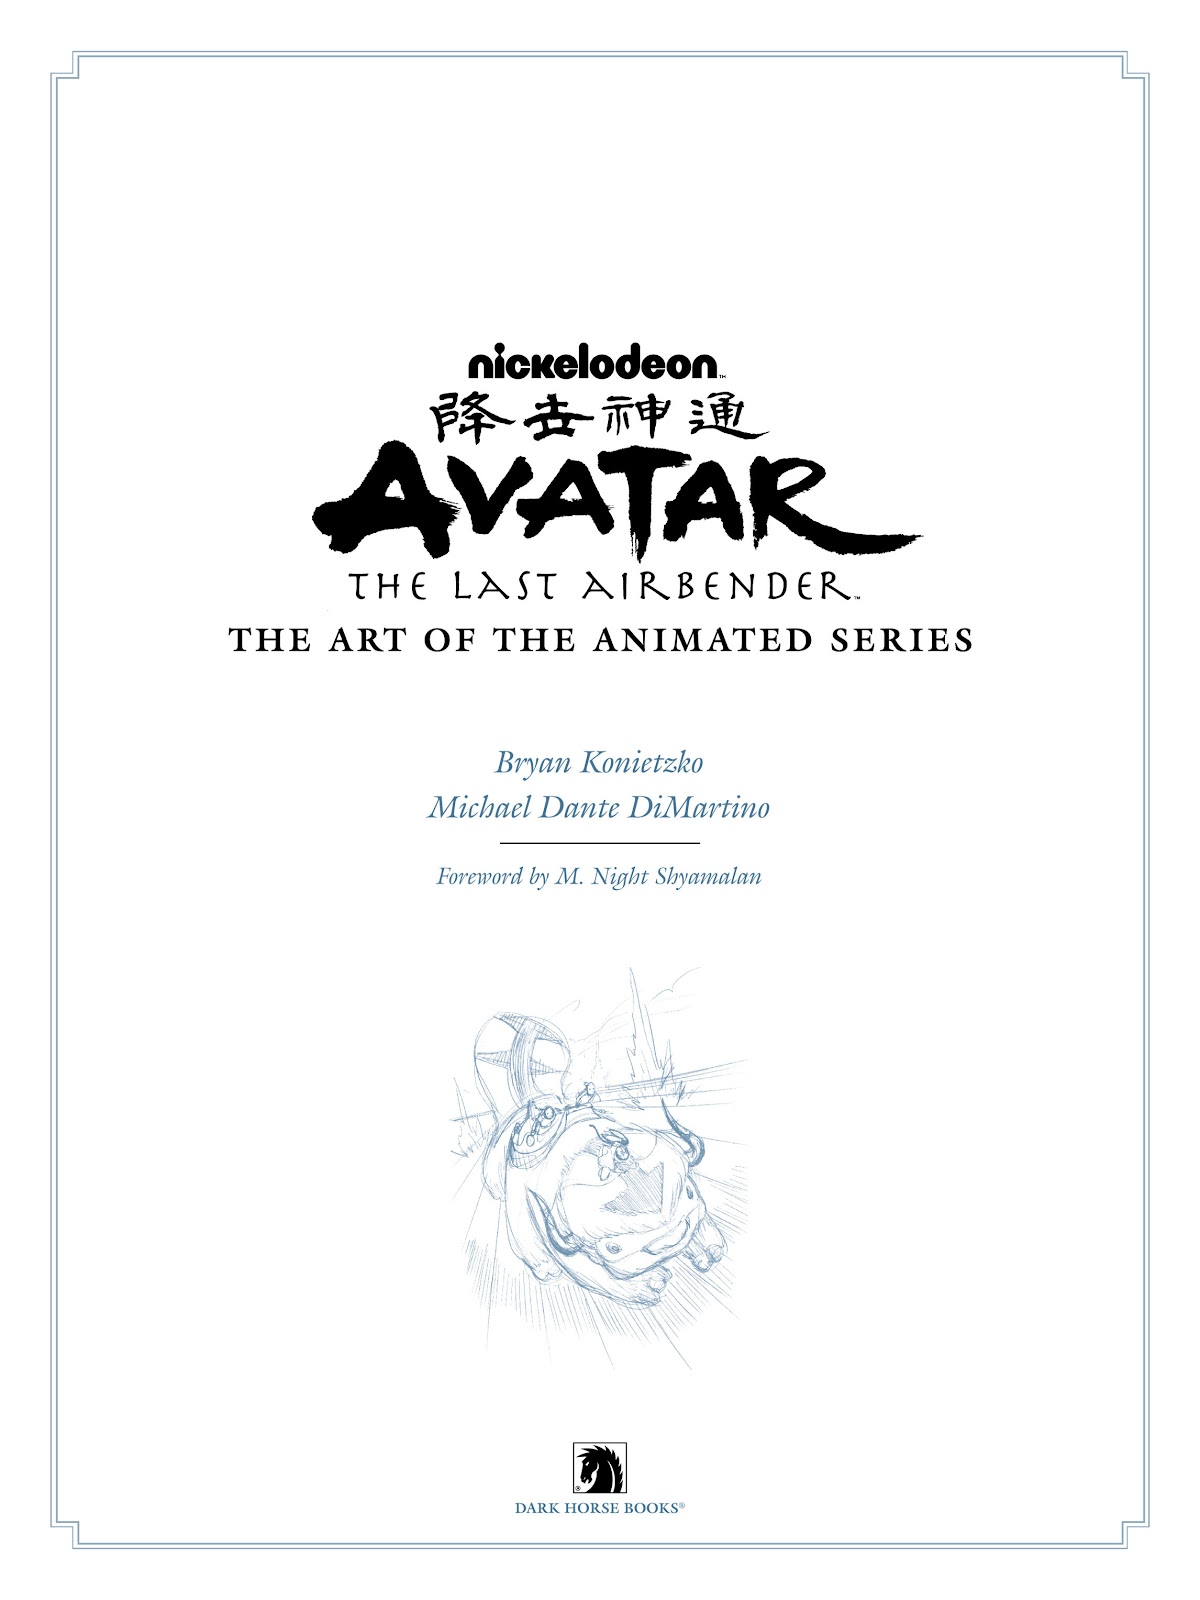 Read online Avatar: The Last Airbender - The Art of the Animated Series comic -  Issue # TPB (Part 1) - 6